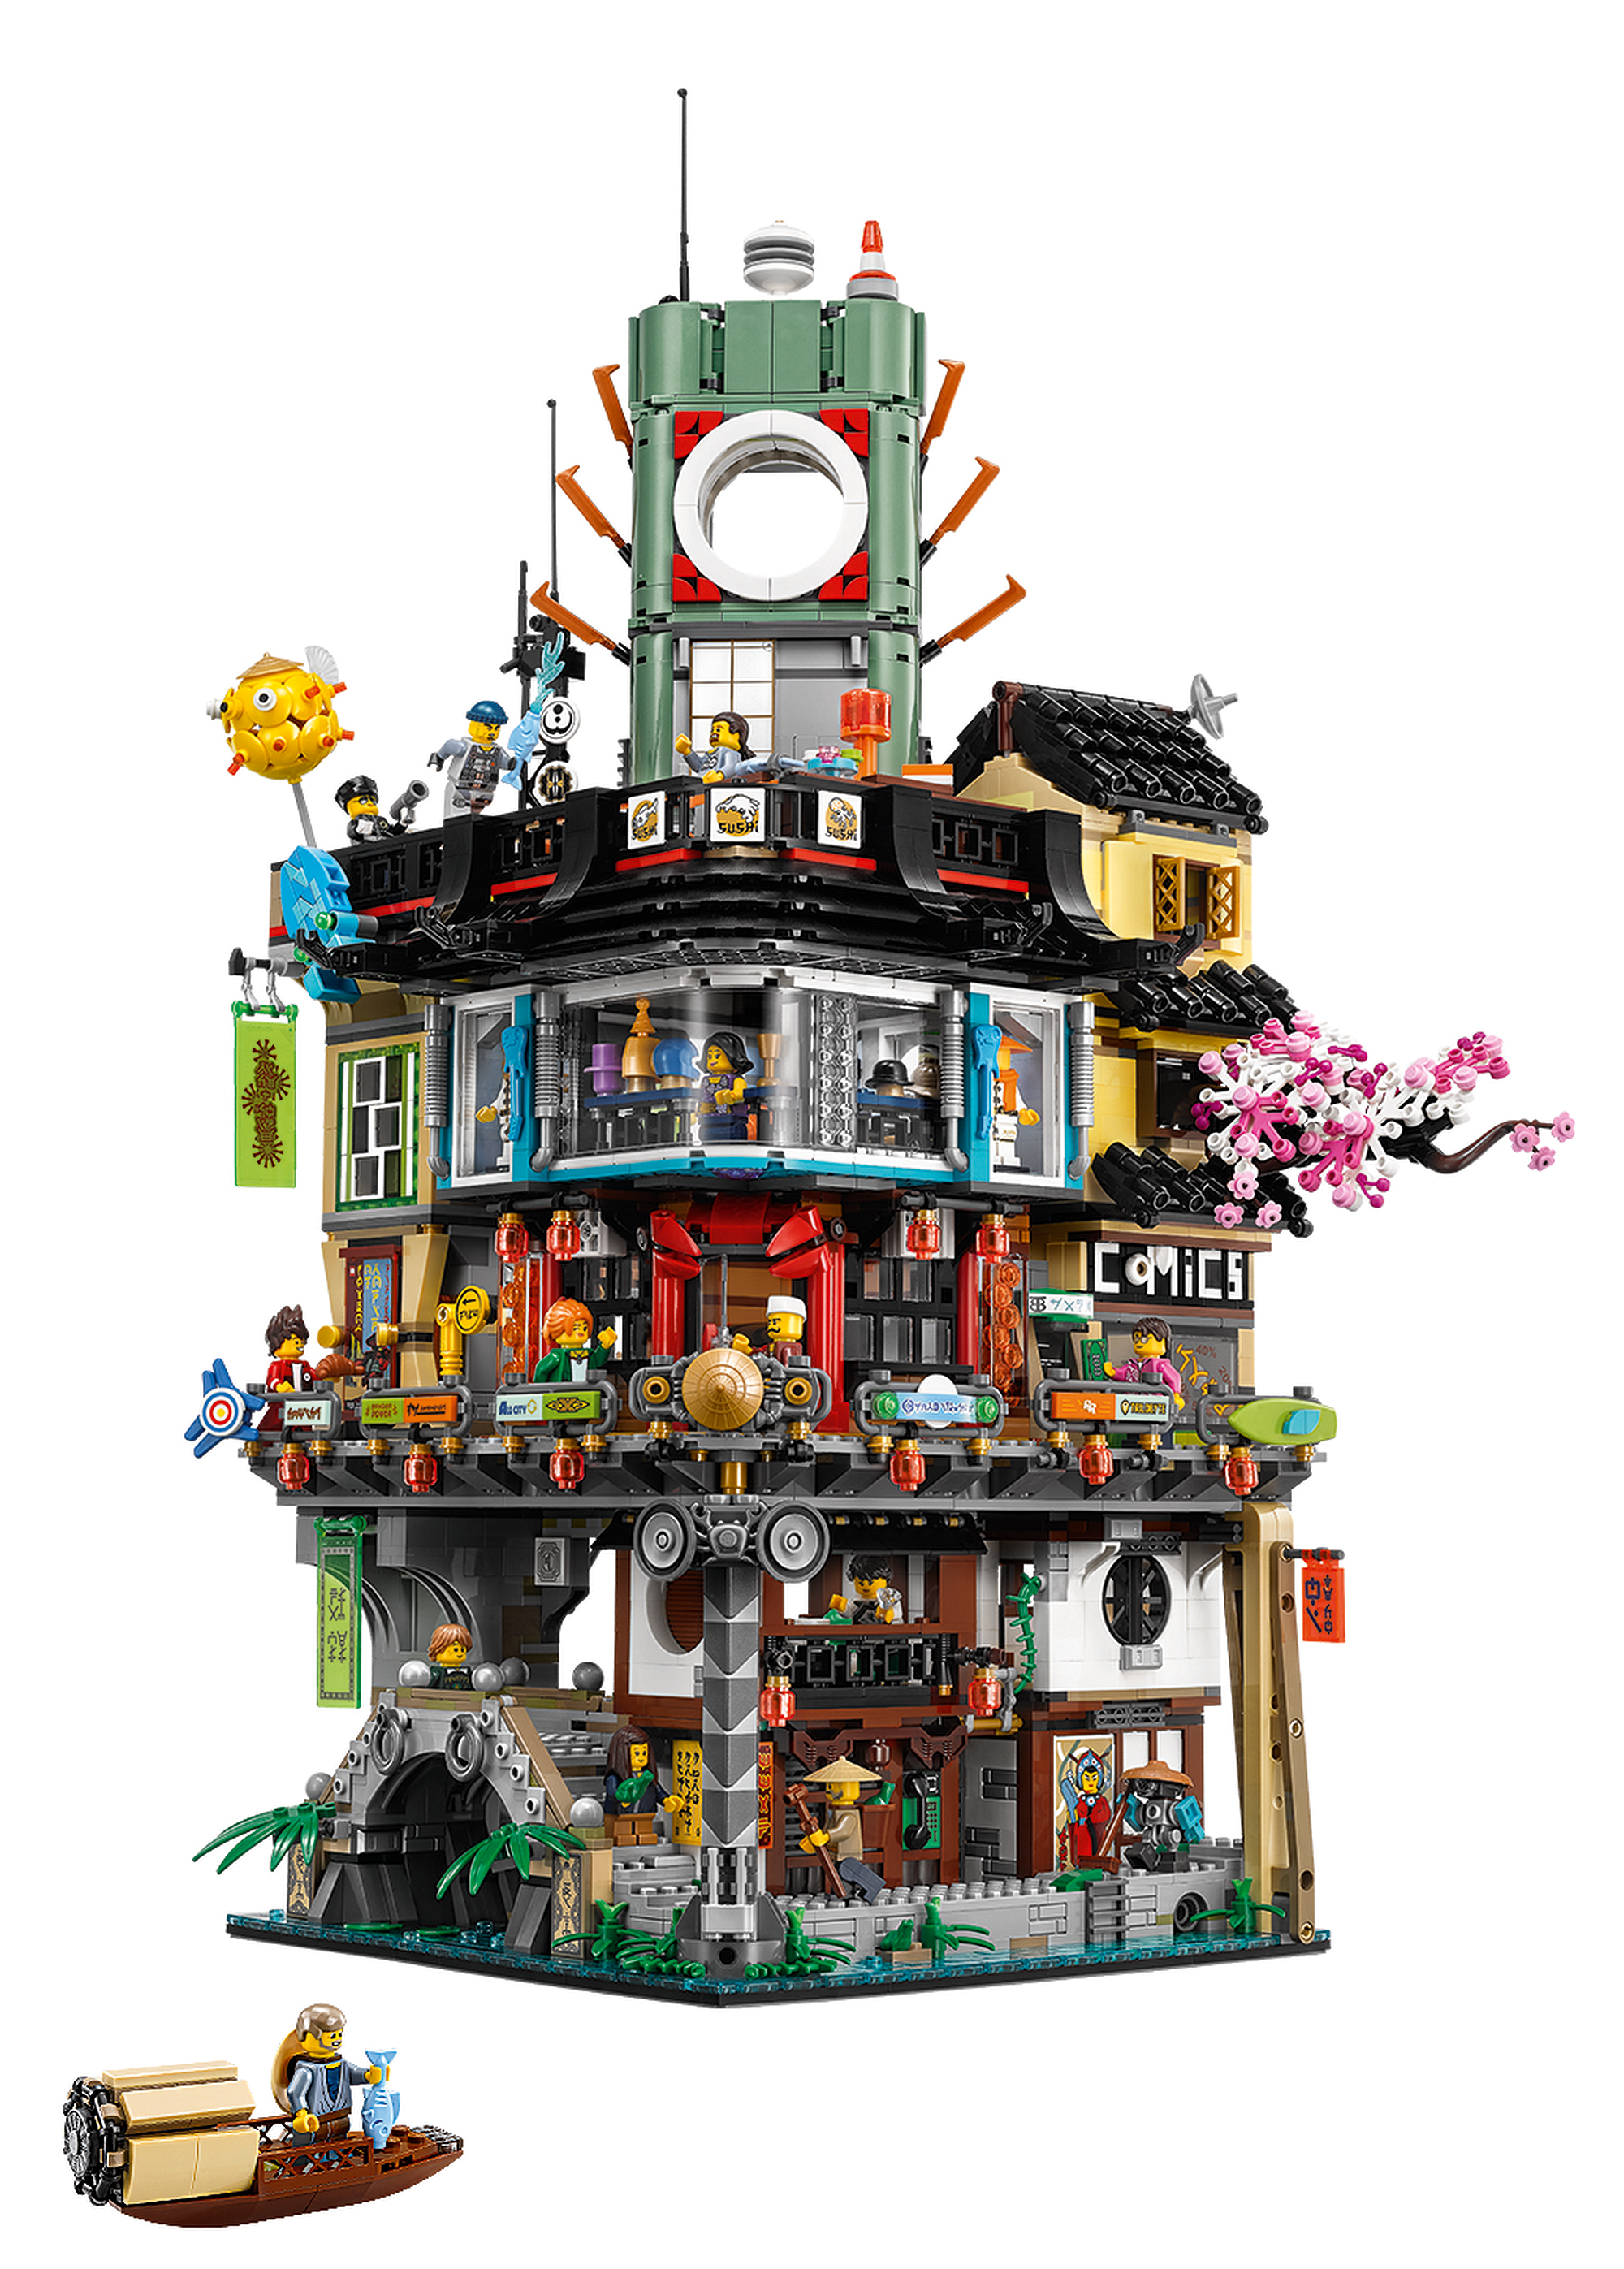 lego reveals 70620 ninjago city the massive modular ninjago movie set. Black Bedroom Furniture Sets. Home Design Ideas